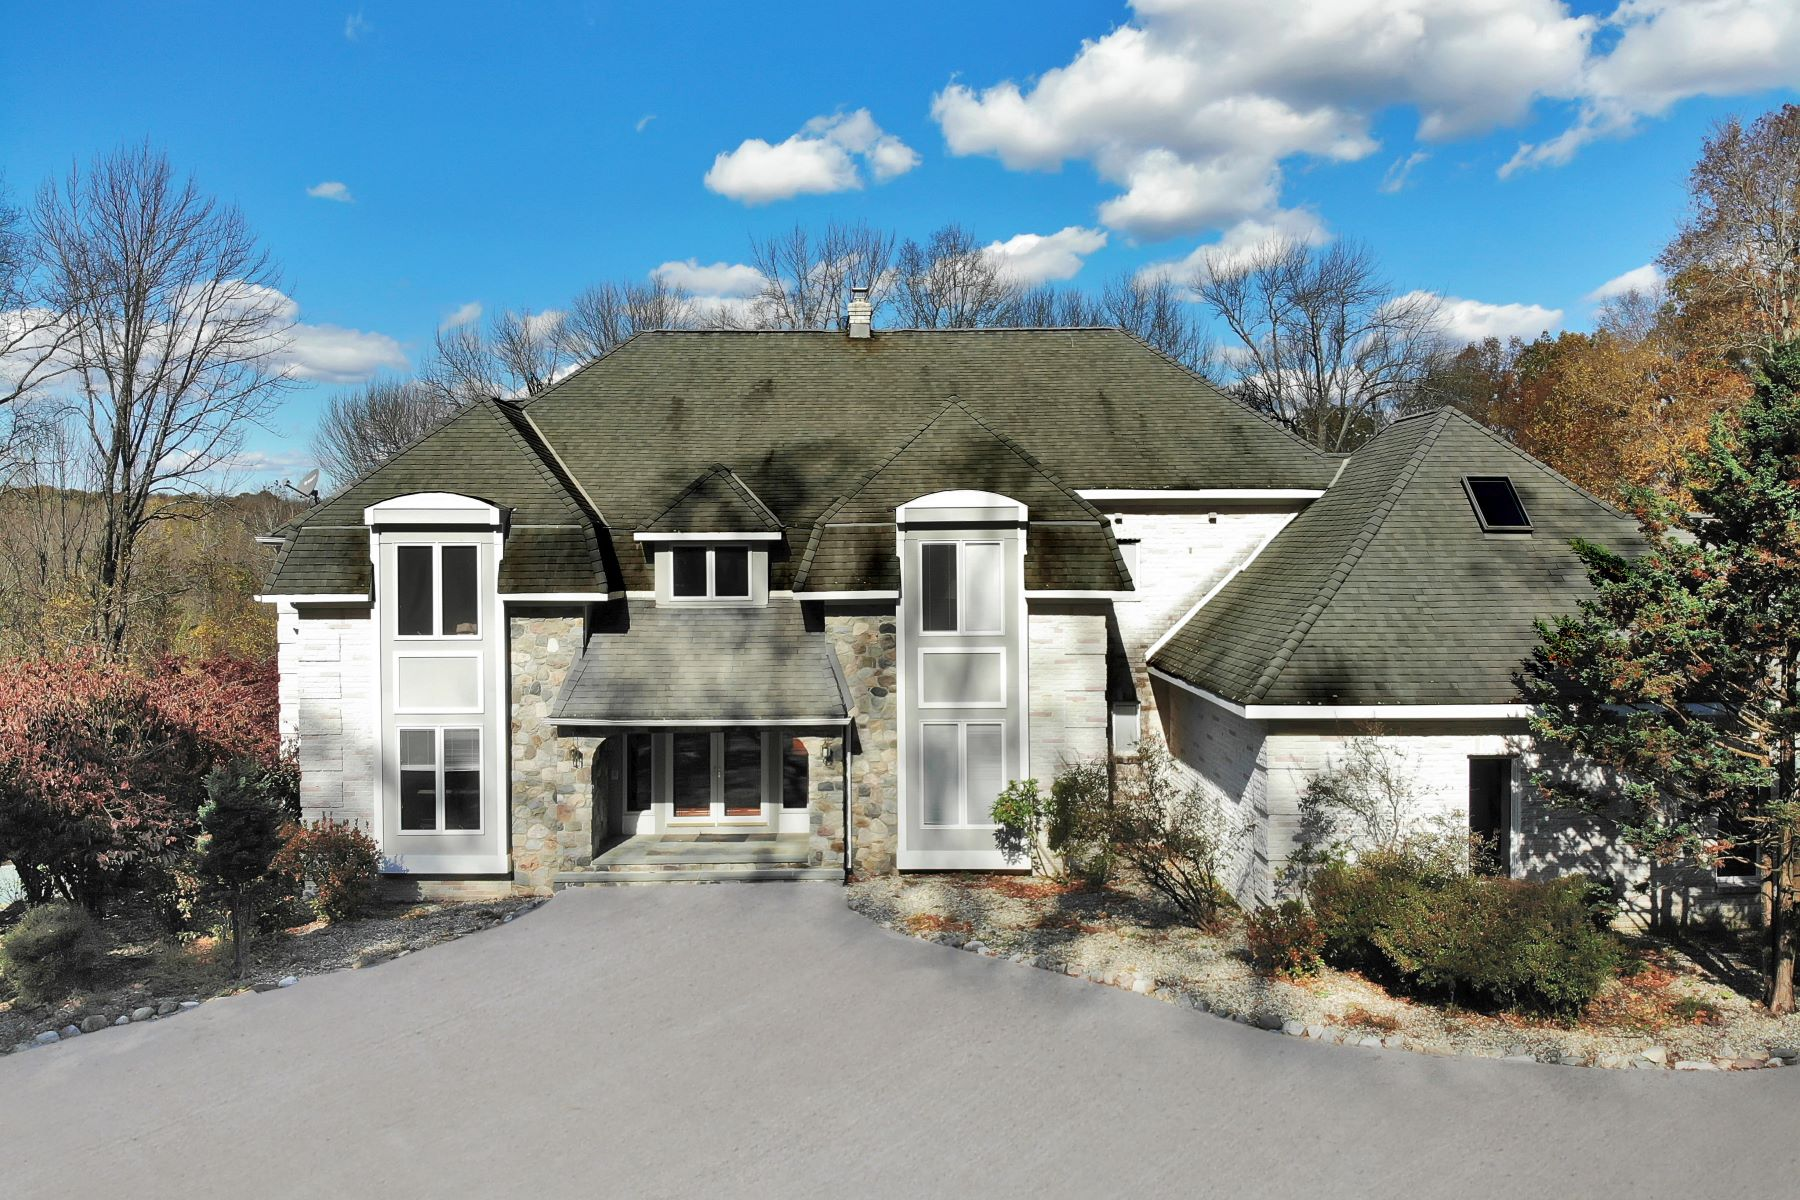 Single Family Homes for Sale at 5 ACRE OASIS 647 W Mountain Rd. Sparta, New Jersey 07871 United States